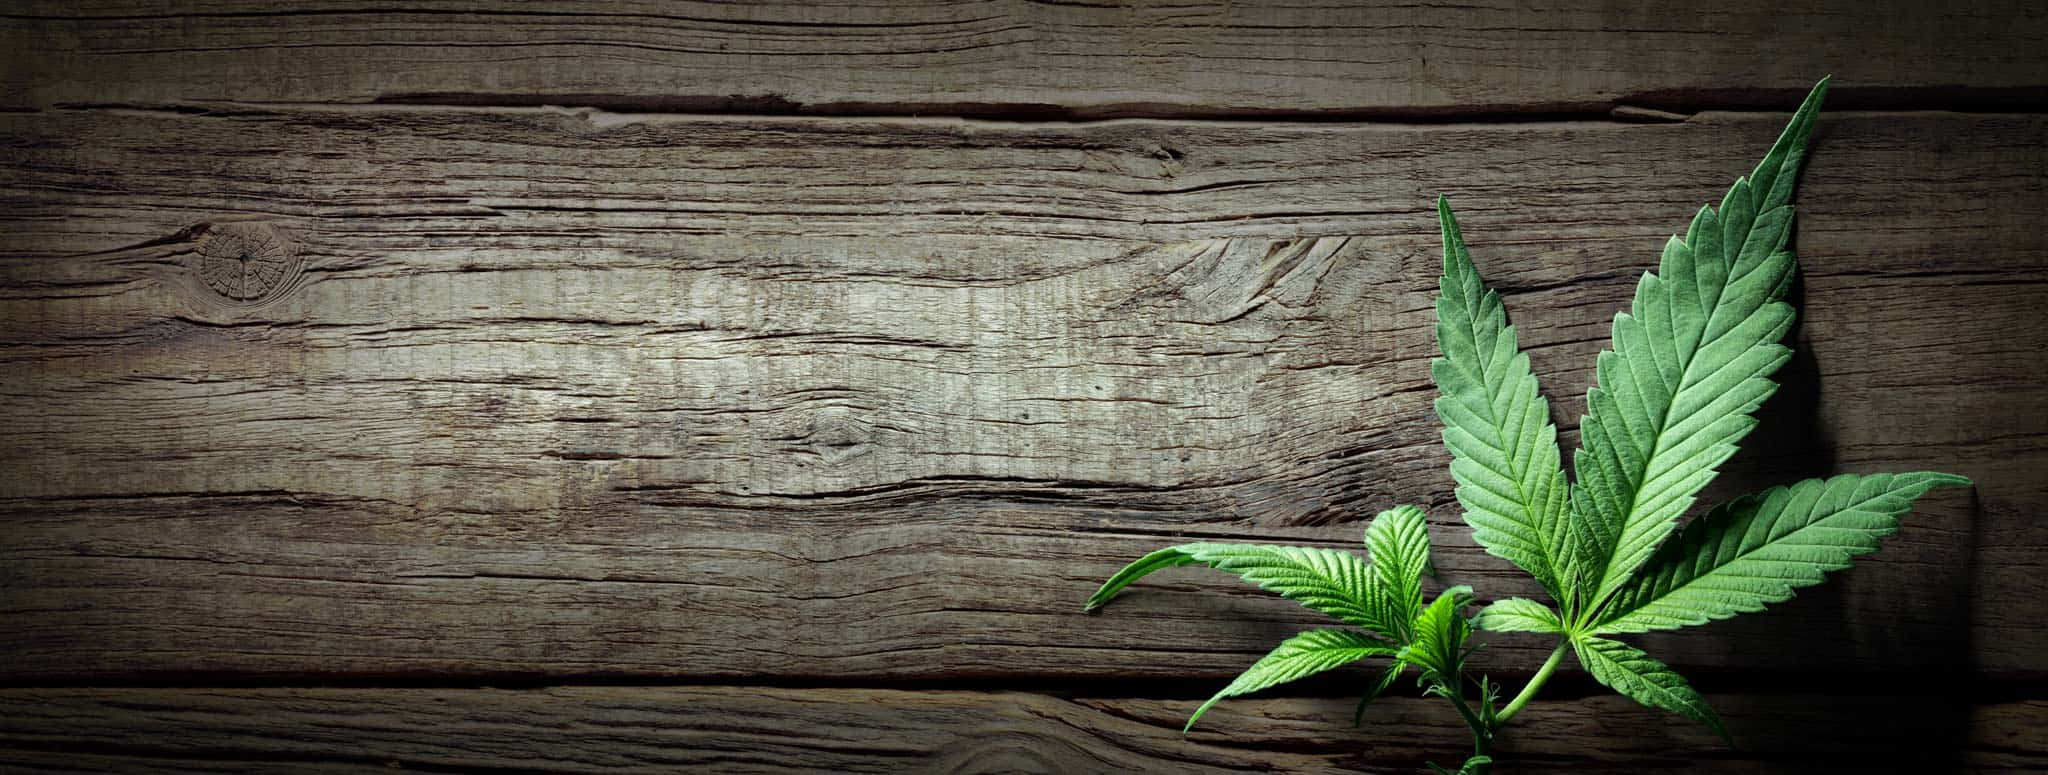 Wooden background with marijuana leaf for CBD oil